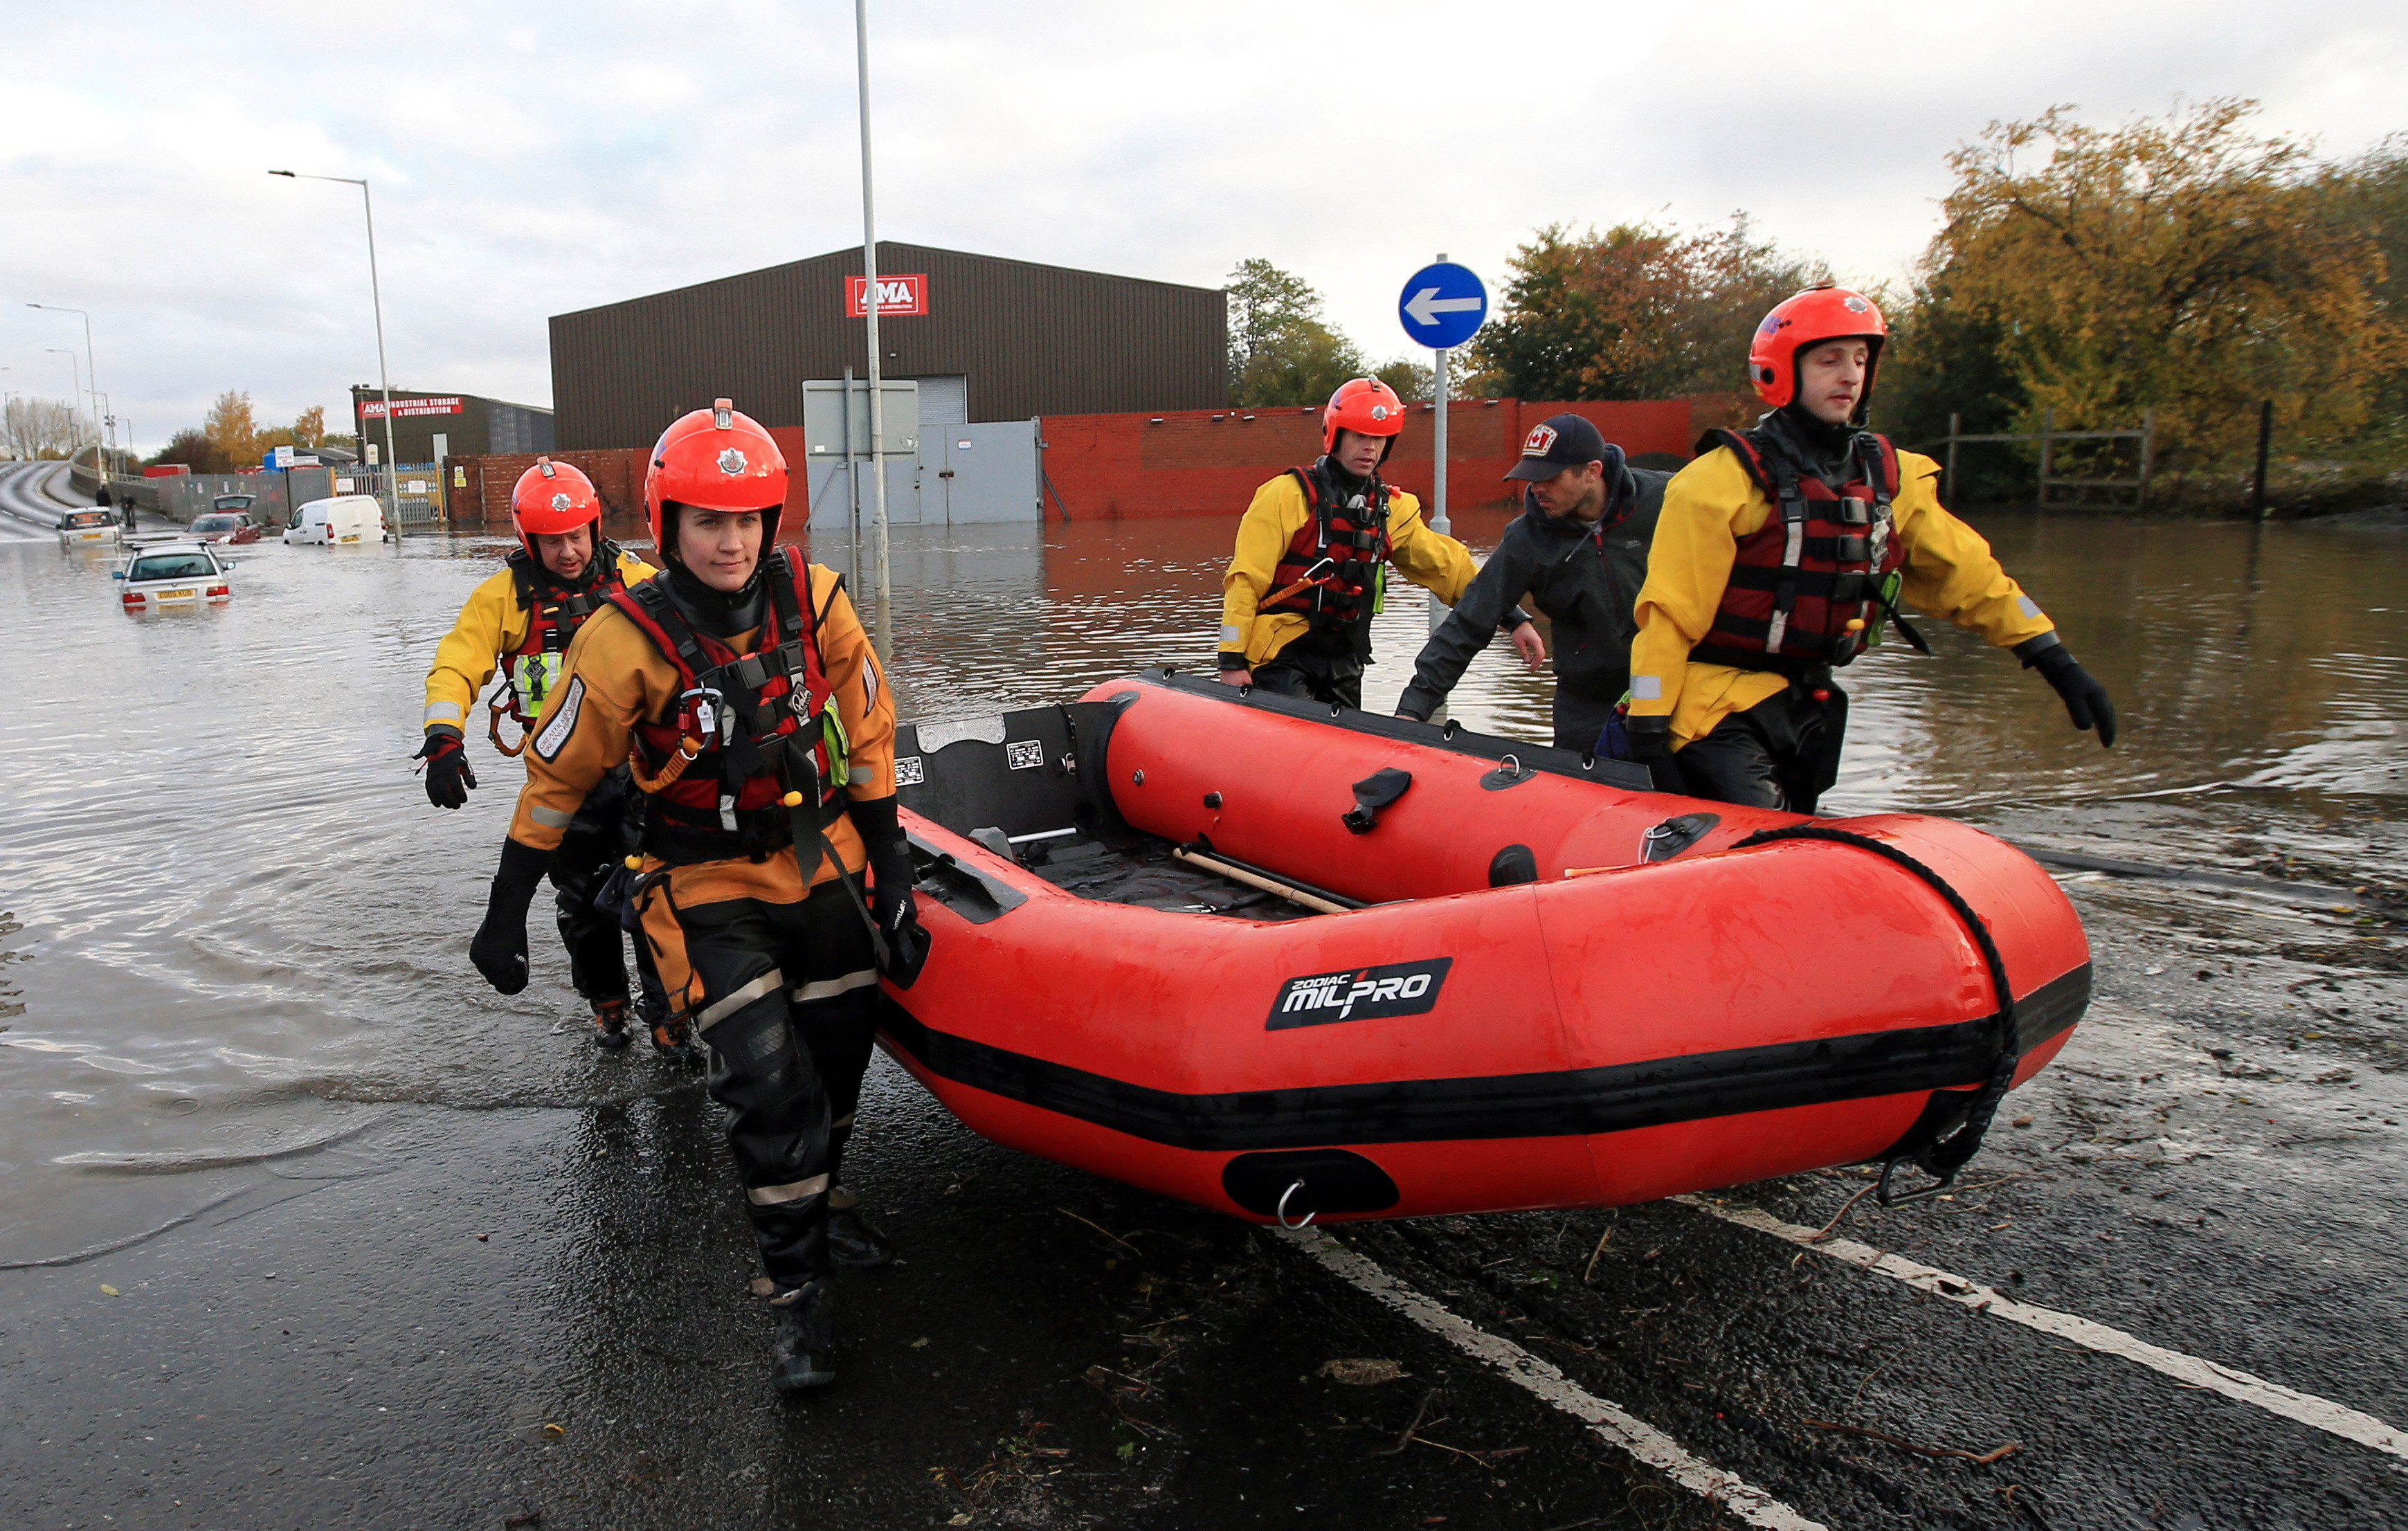 Rescuers carry an inflatable raft after flooding in Rotherham, Sheffield